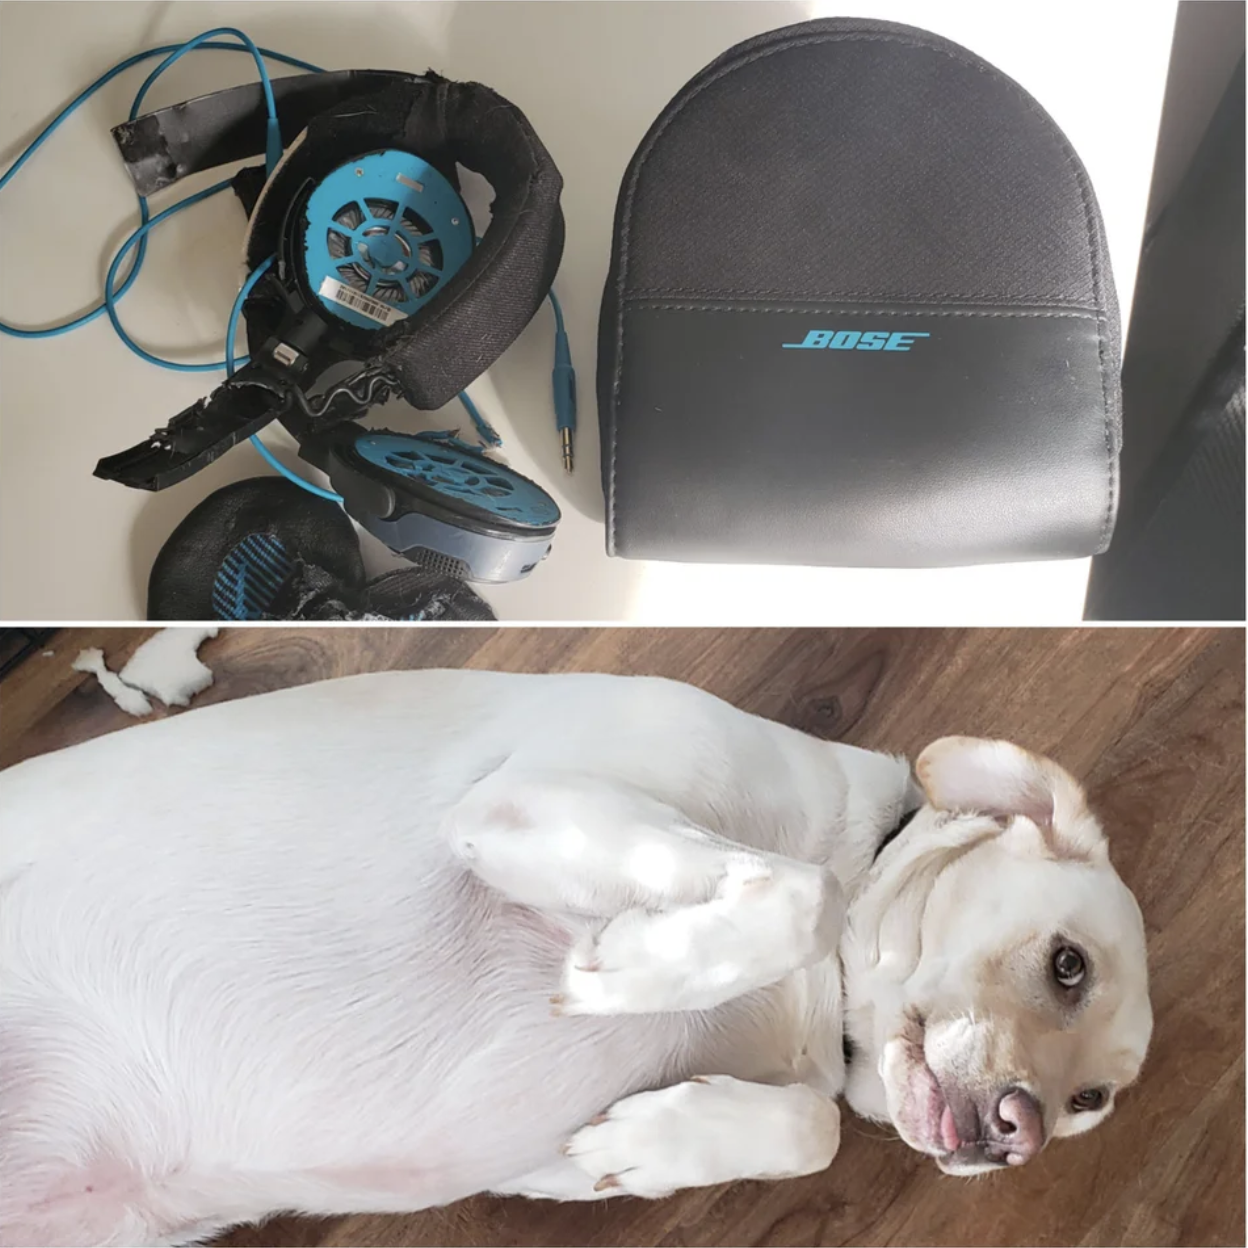 A dog and chewed-up headphones